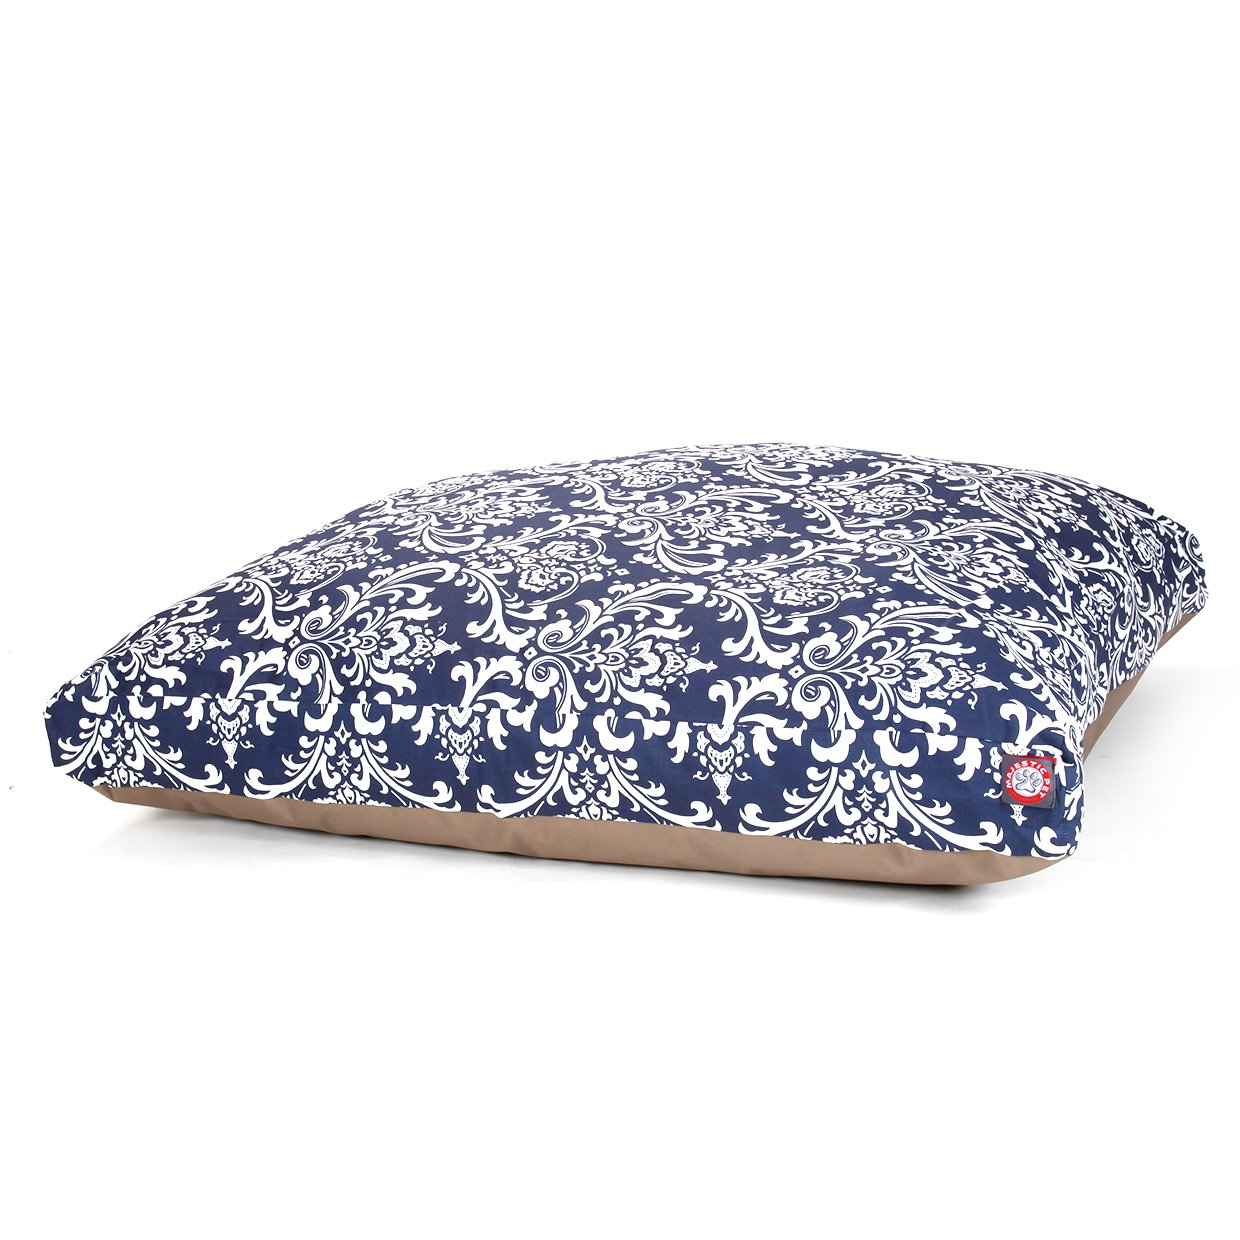 Navy Blue French Quarter Extra Large Rectangle Indoor Outdoor Pet Dog Bed With Removable Washable Cover By Majestic Pet Products